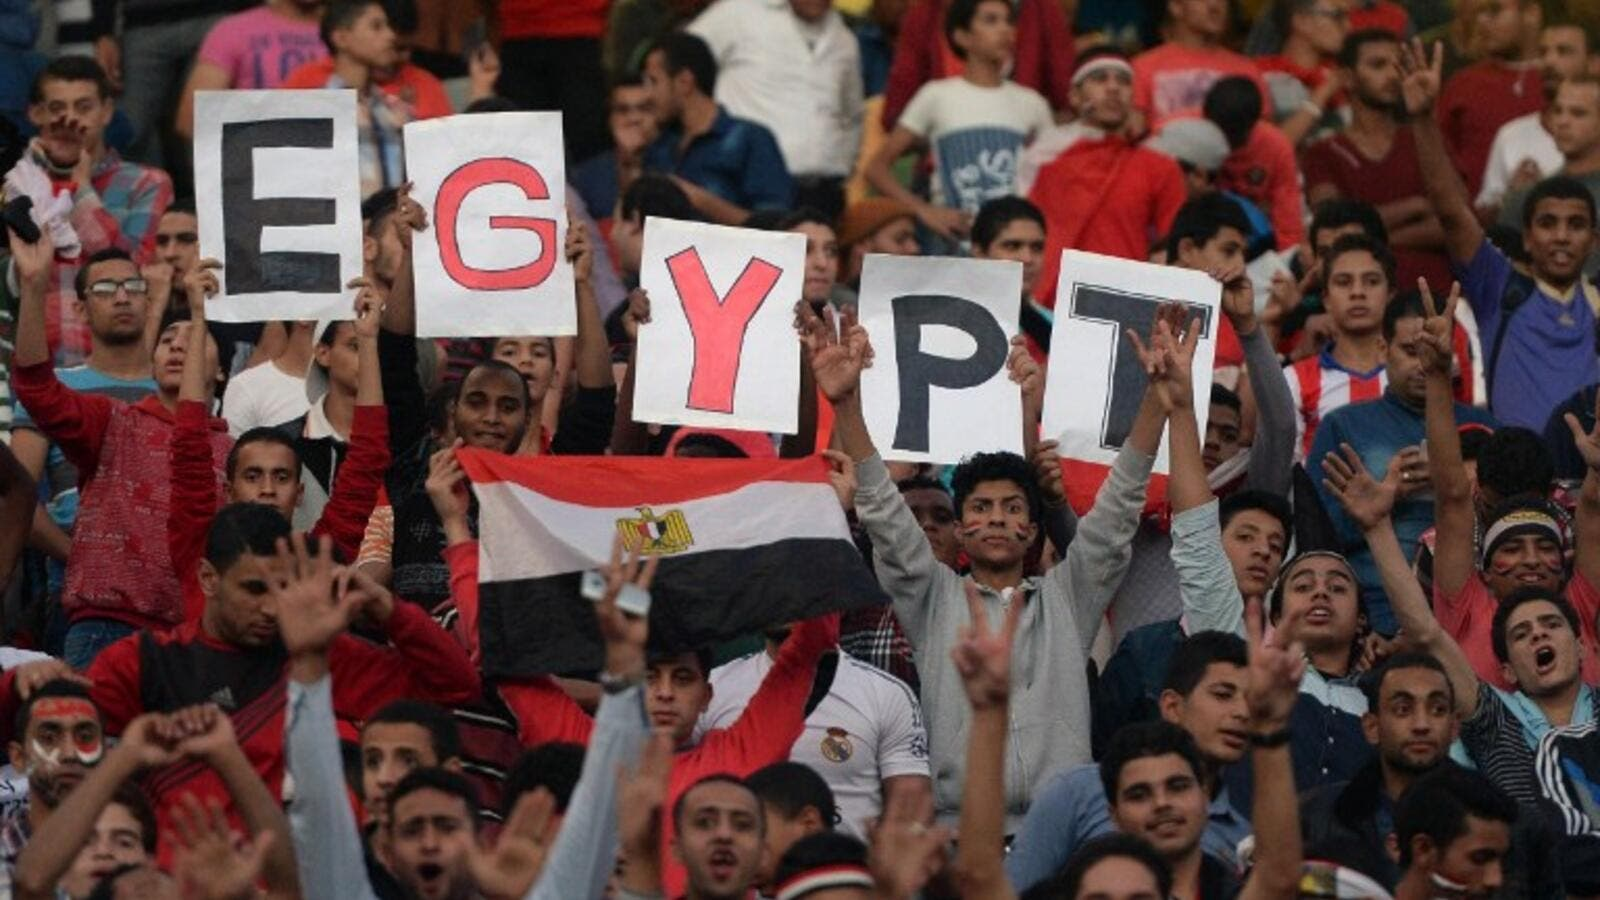 Egypt qualified for the World Cup, for the third time in its history, after beating Congo 2-1 in the African qualifiers.